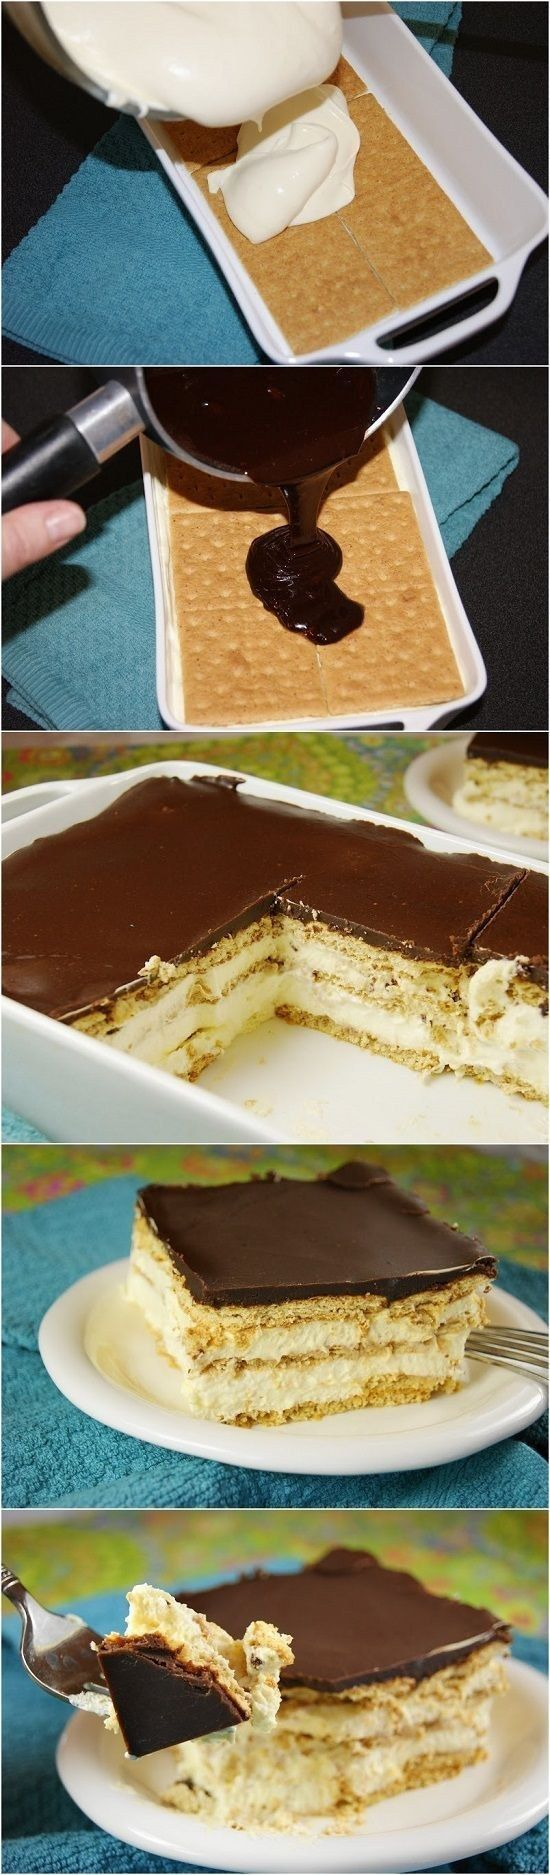 No-Bake Chocolate Eclair Cake